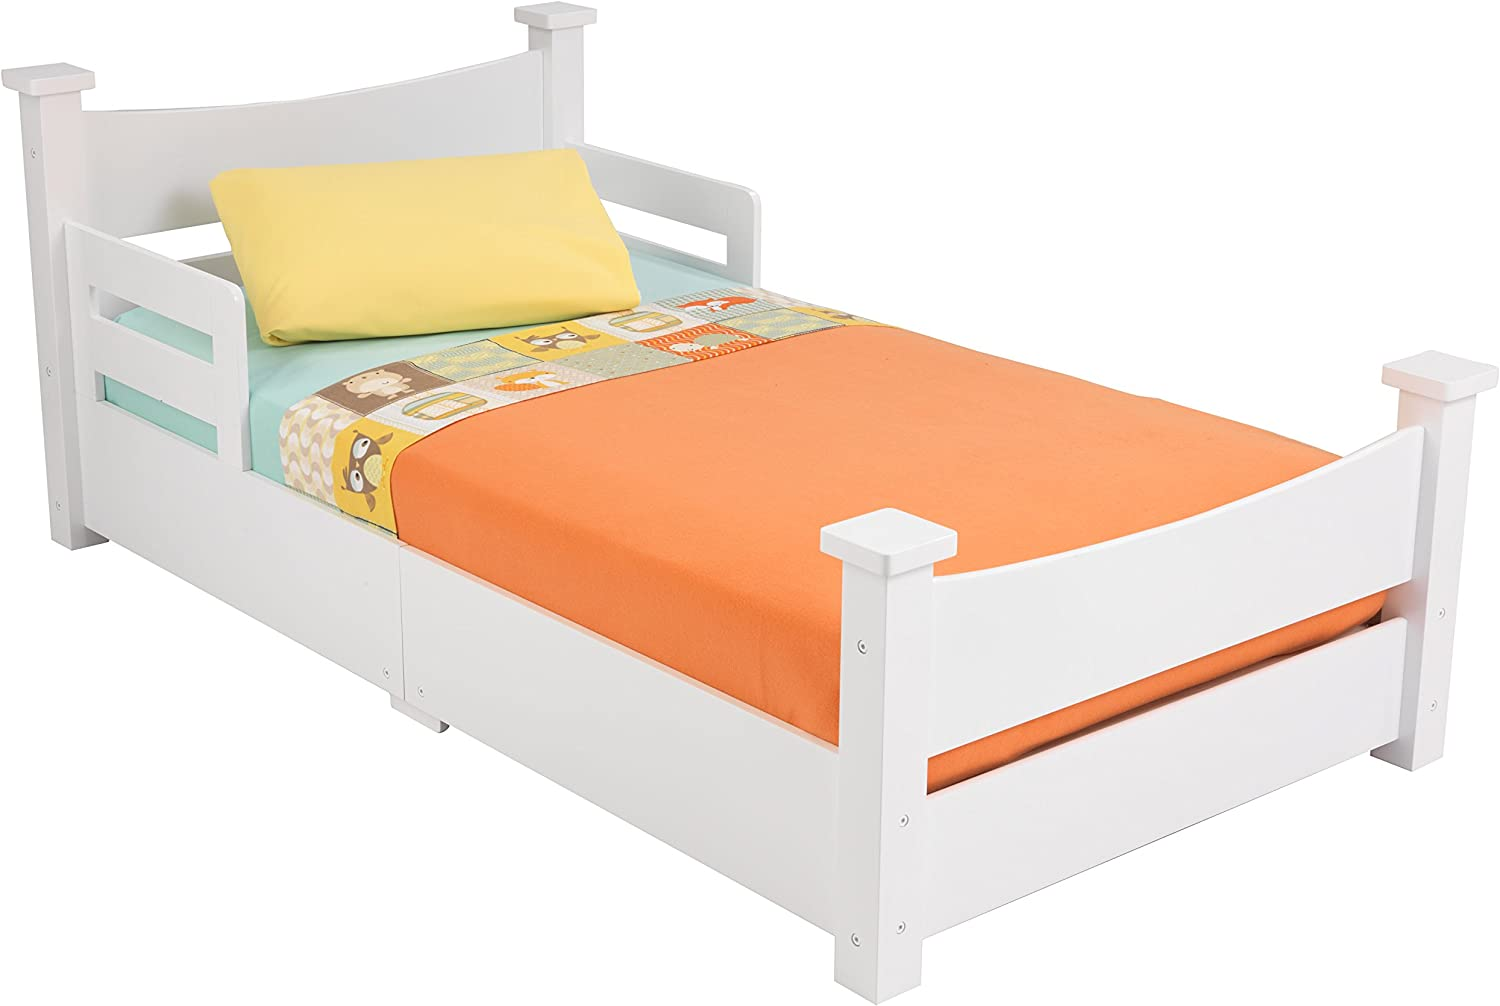 KidKraft Addison Toddler Bed, White